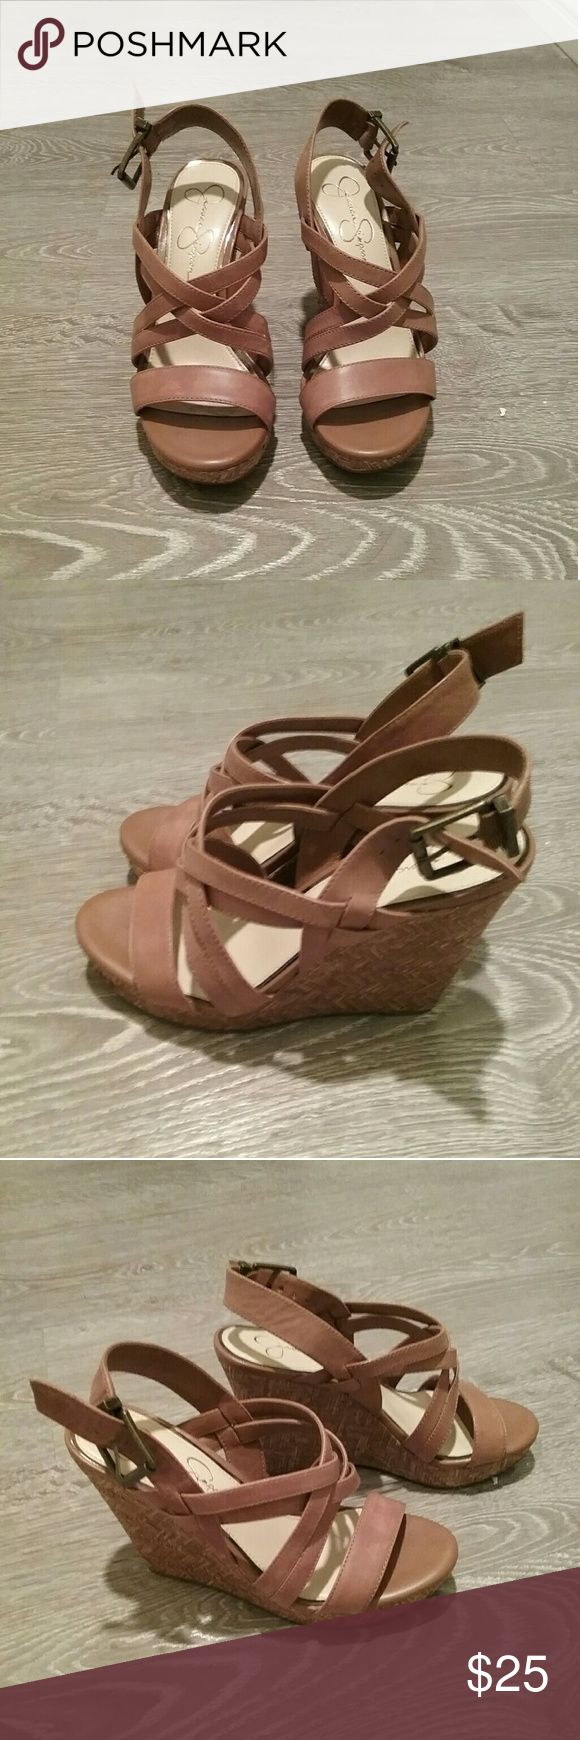 Jessica Simpson Wedges Cute Wedges in excellent condition! Jessica Simpson Shoes Wedges